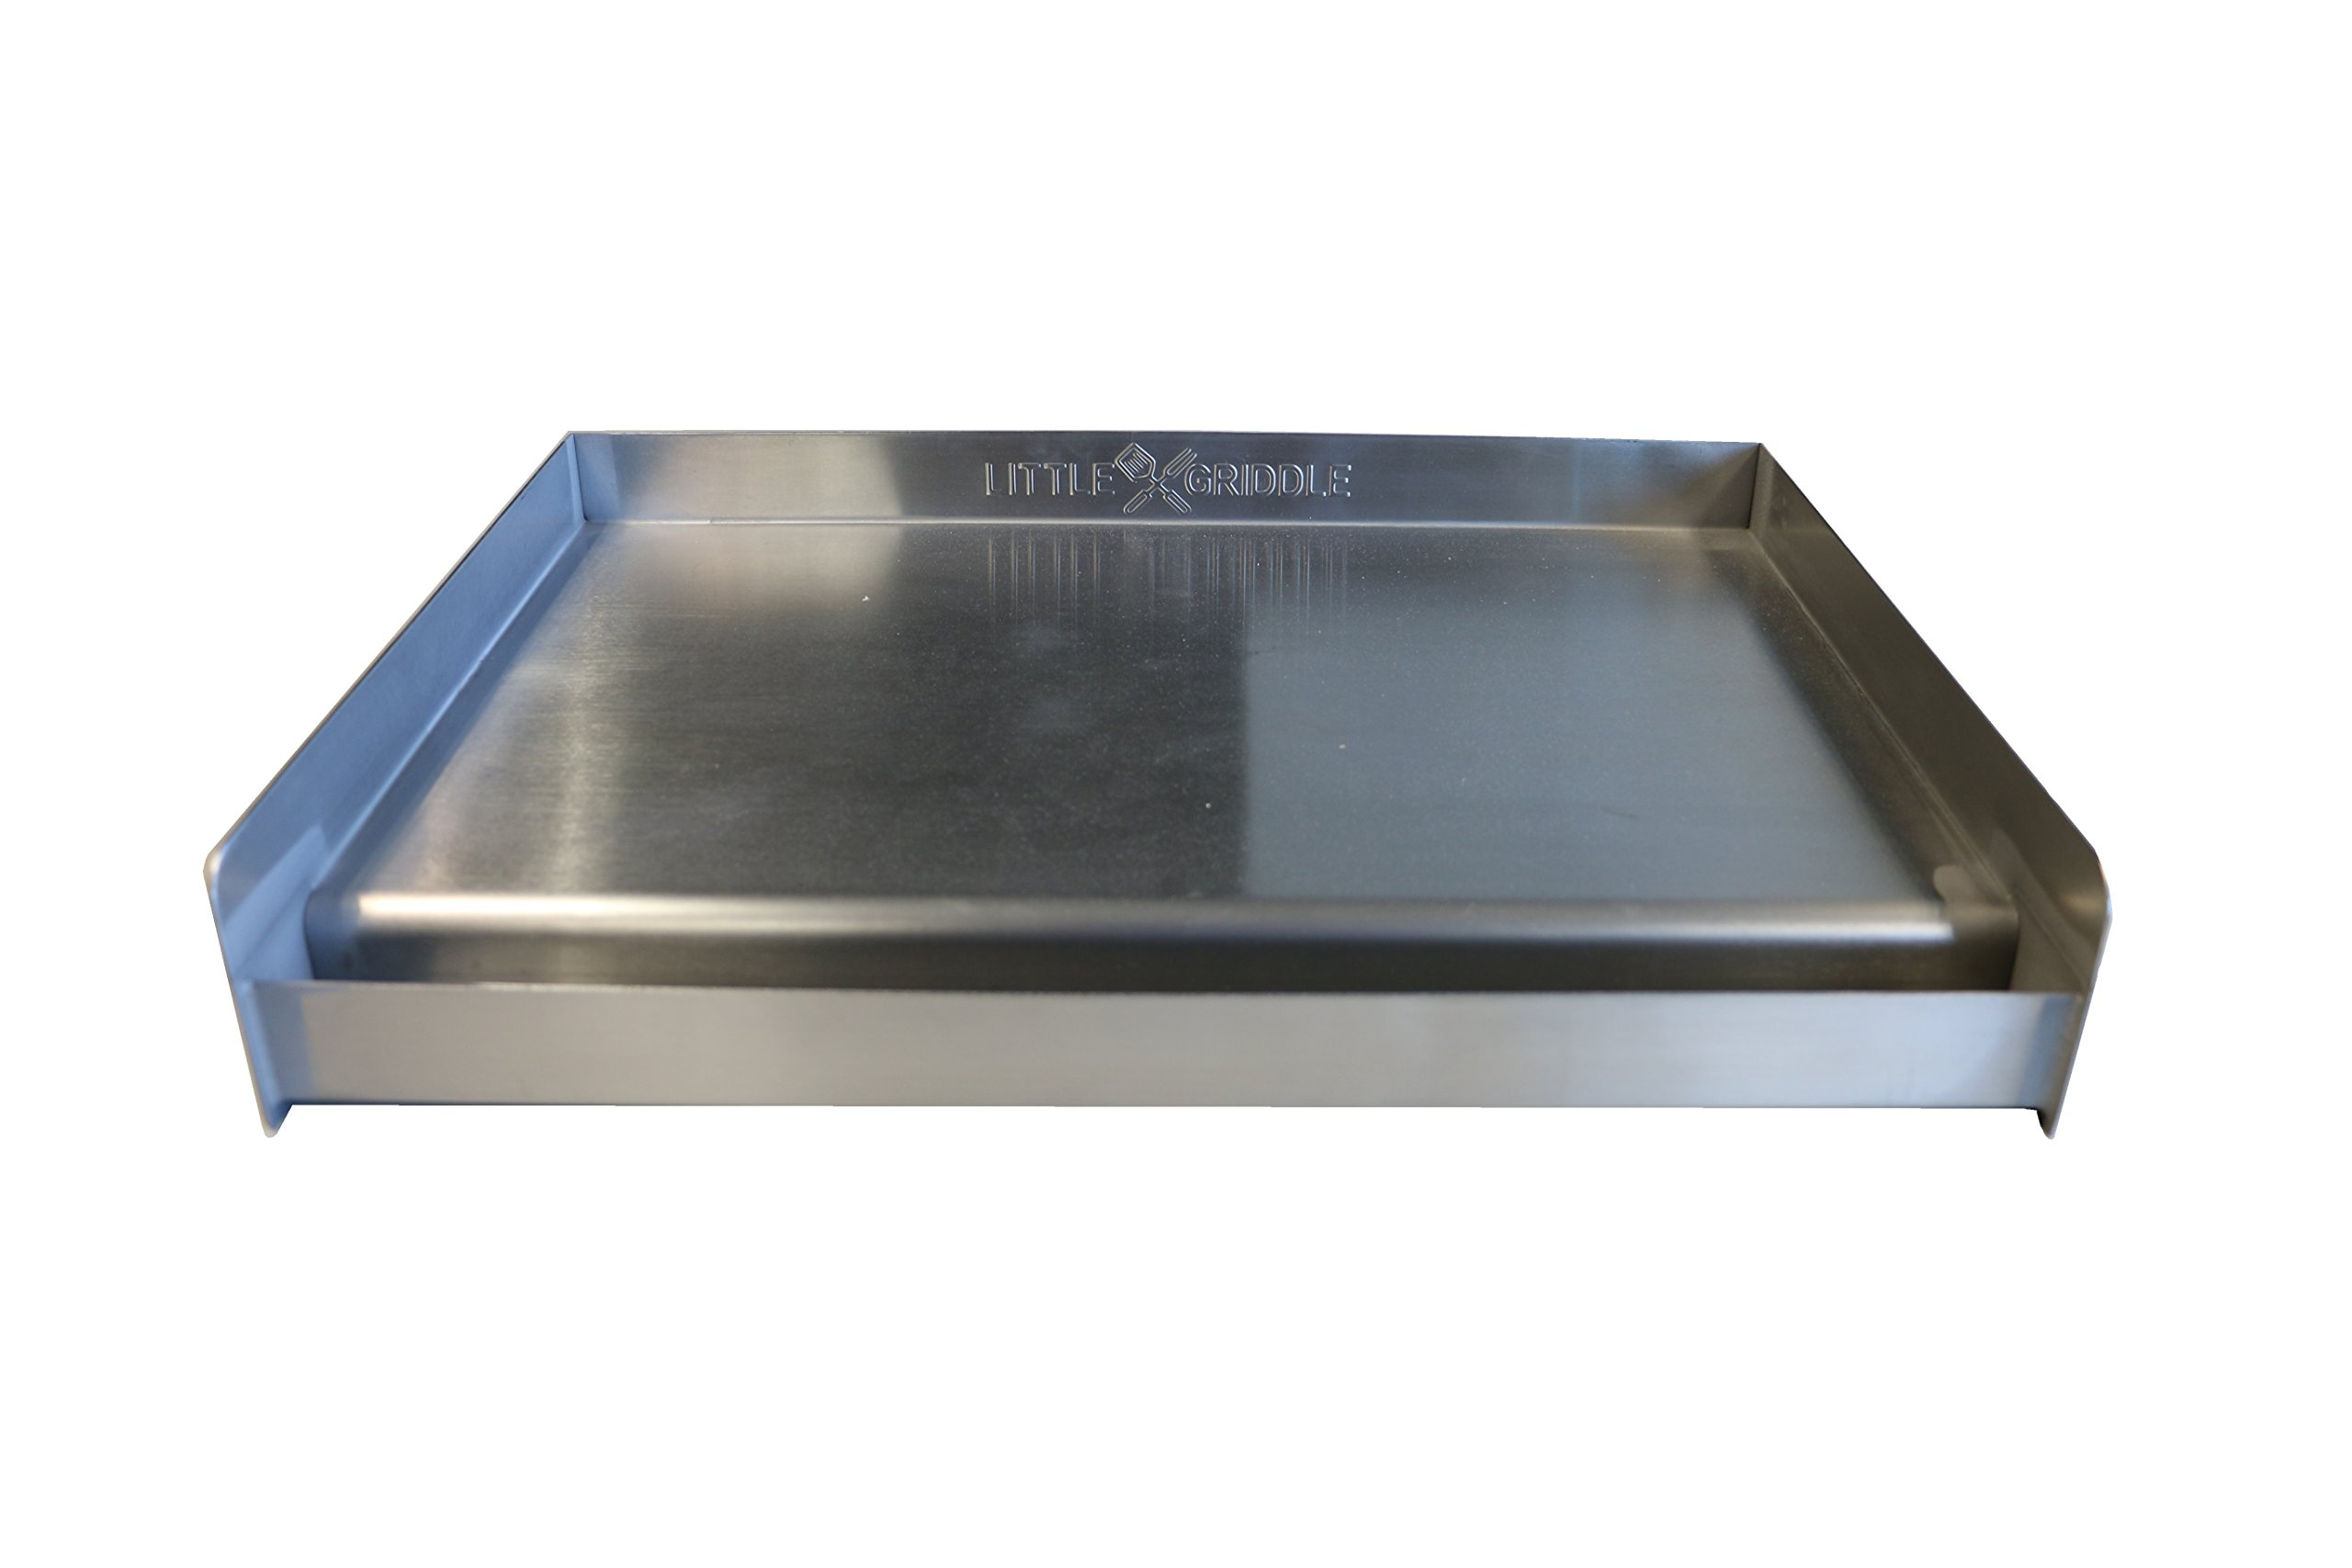 Sizzle-Q SQ180 100% Stainless Steel Universal Griddle with Even Heating Cross Bracing for Charcoal/Gas Grills, Camping, Tailgating, and Parties (18''x13''x3'') by Little Griddle